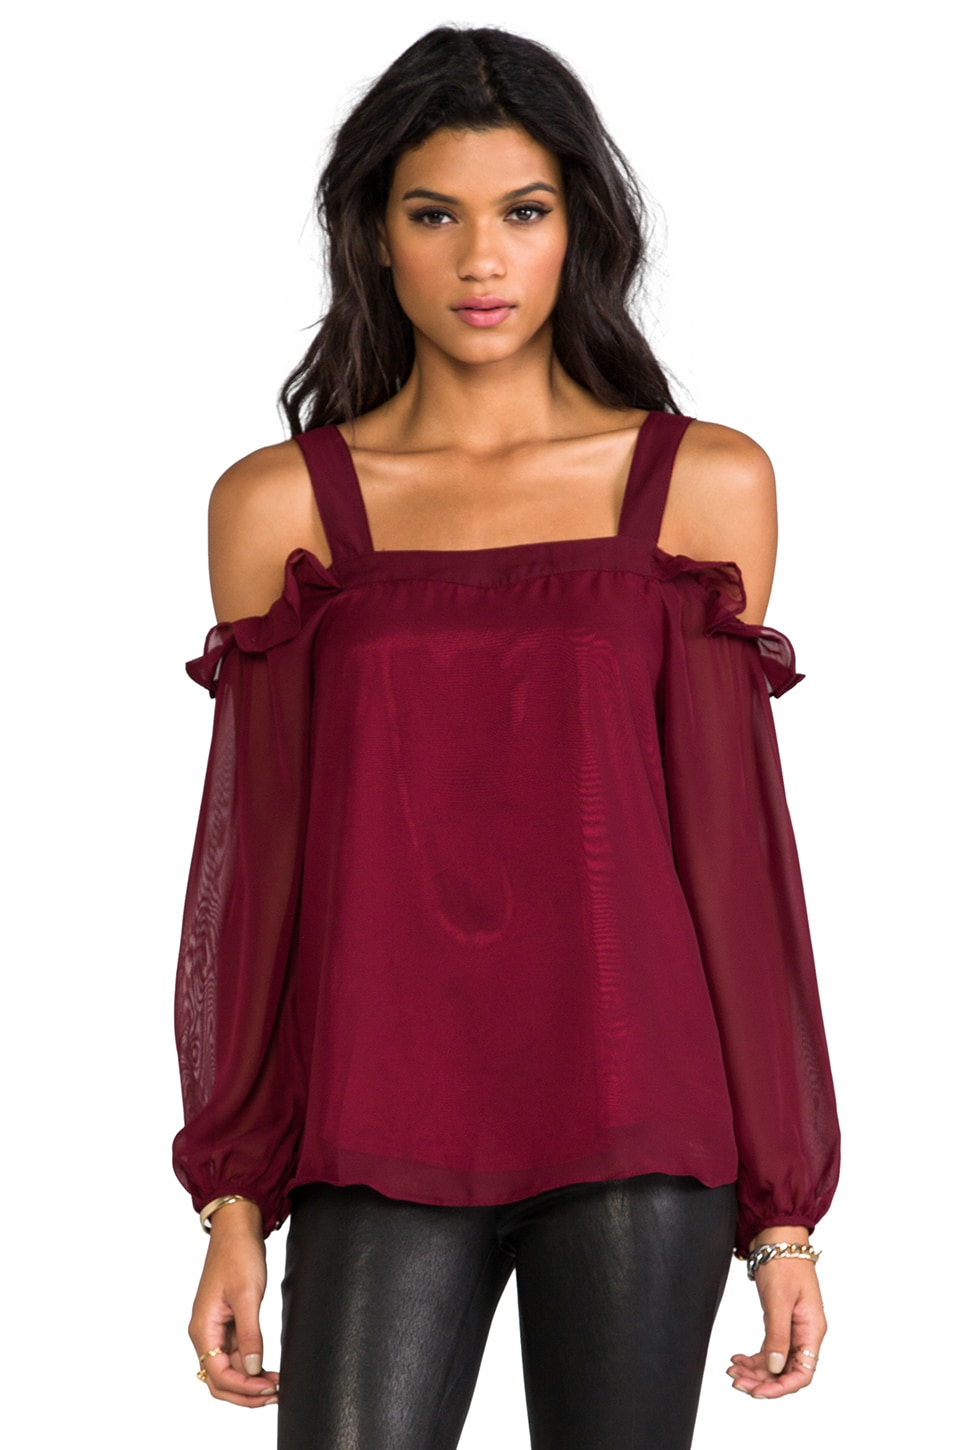 VAVA by Joy Han Isabella Top in Burgundy